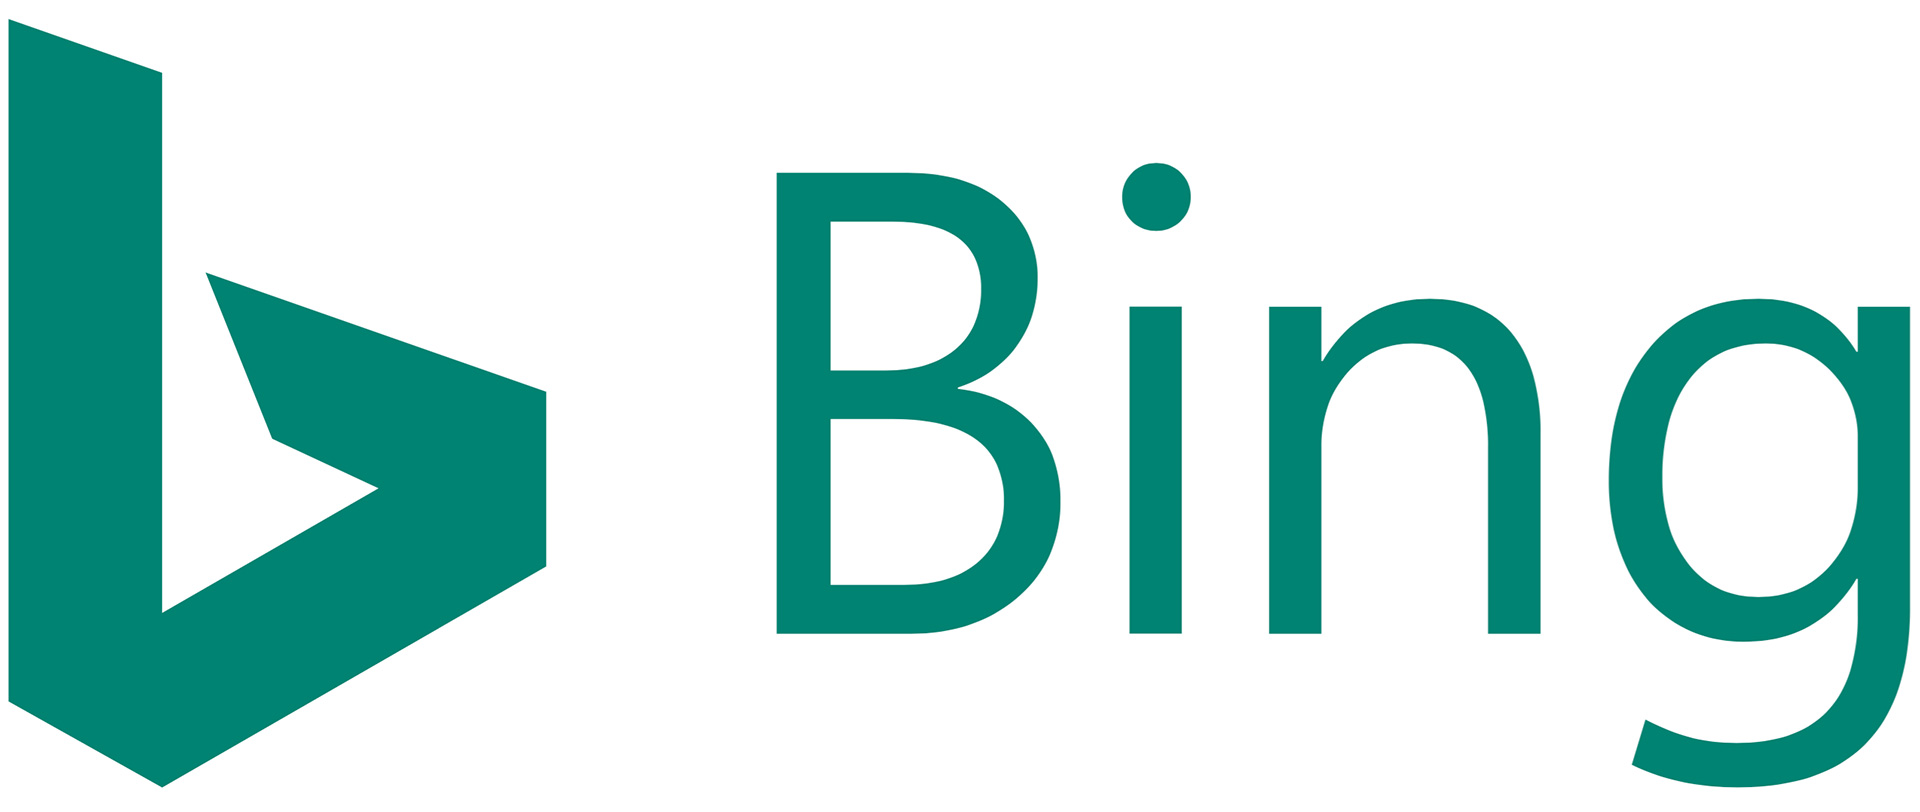 bing 2016 new logo full